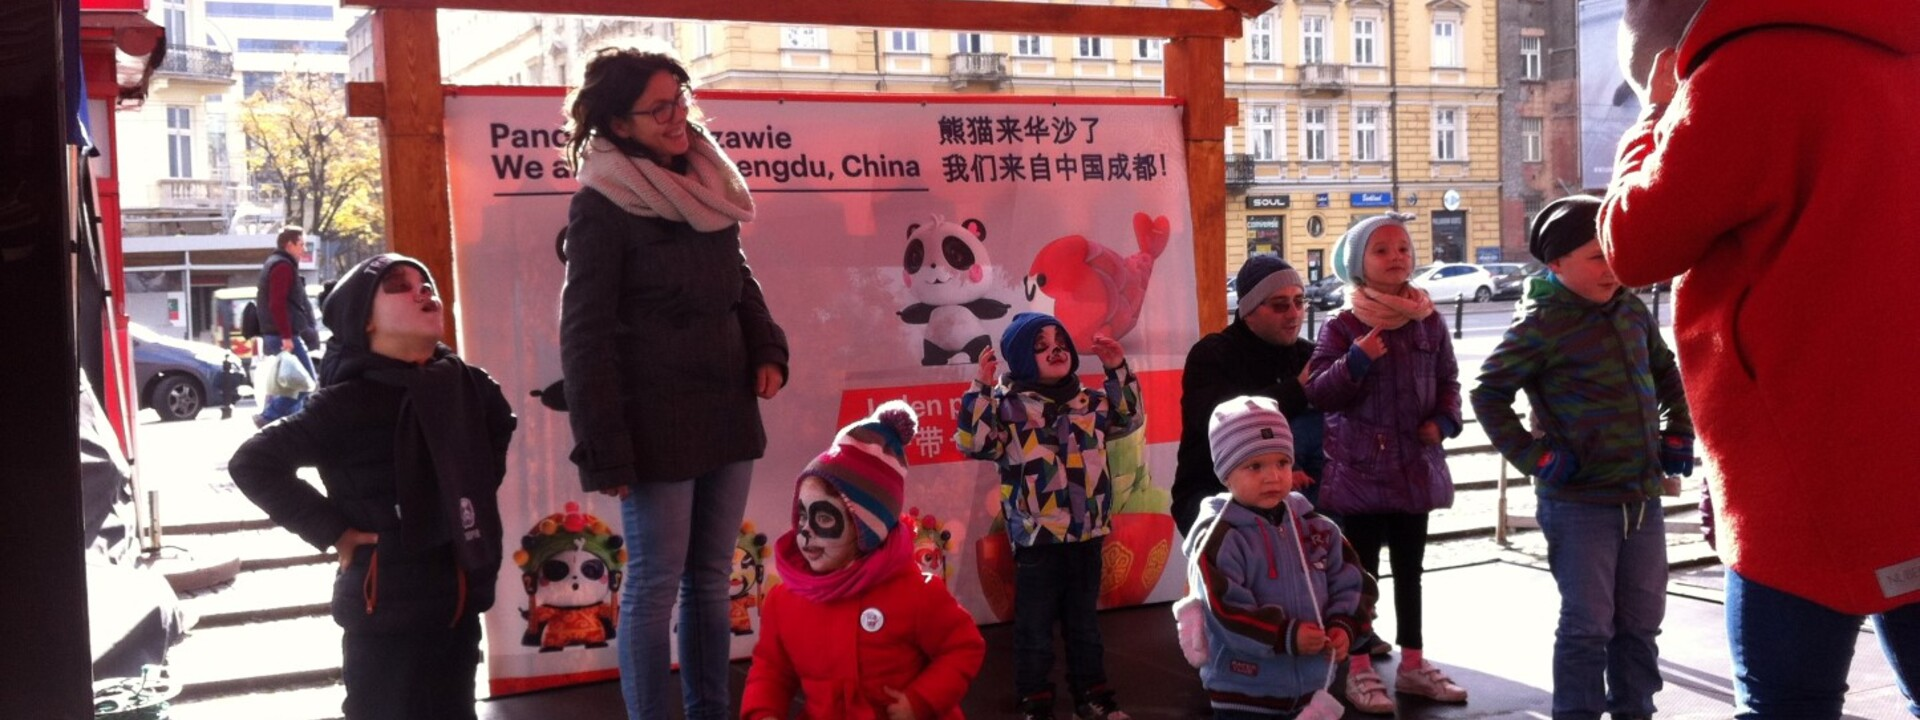 chengdu-6-promotion-kids.JPG